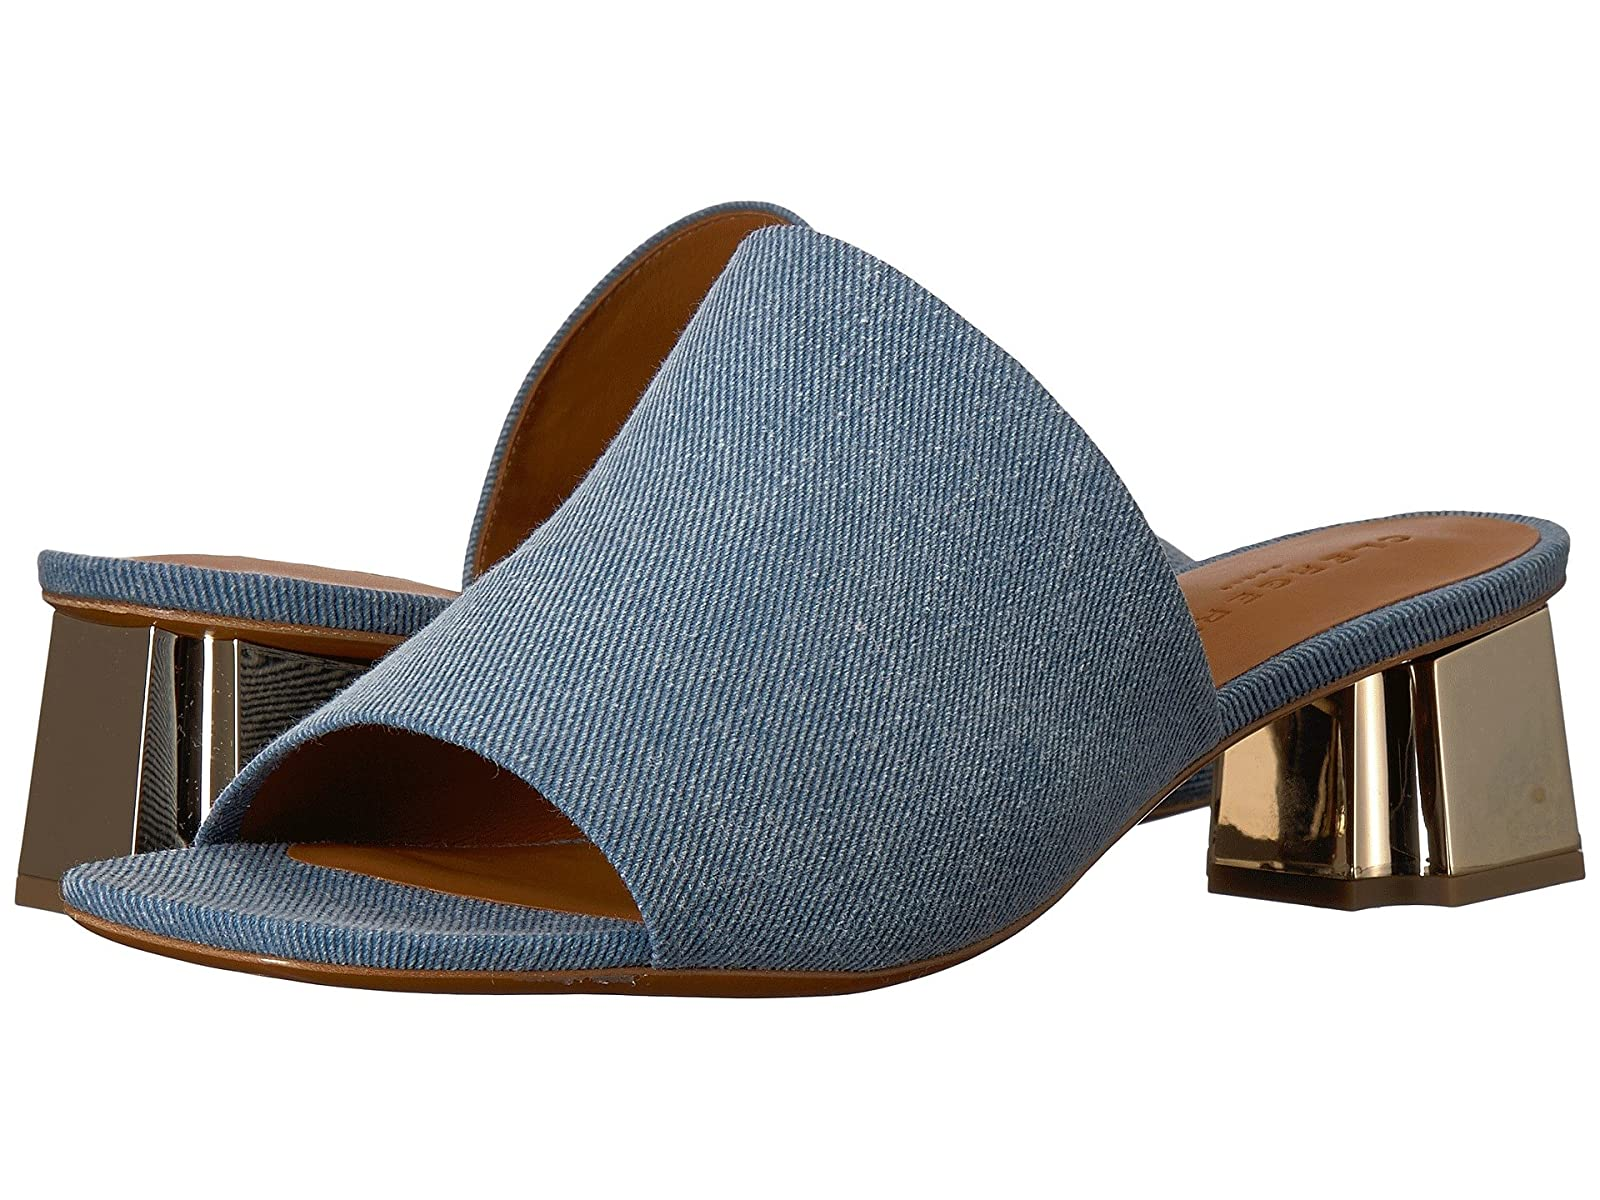 Clergerie LamodCheap and distinctive eye-catching shoes